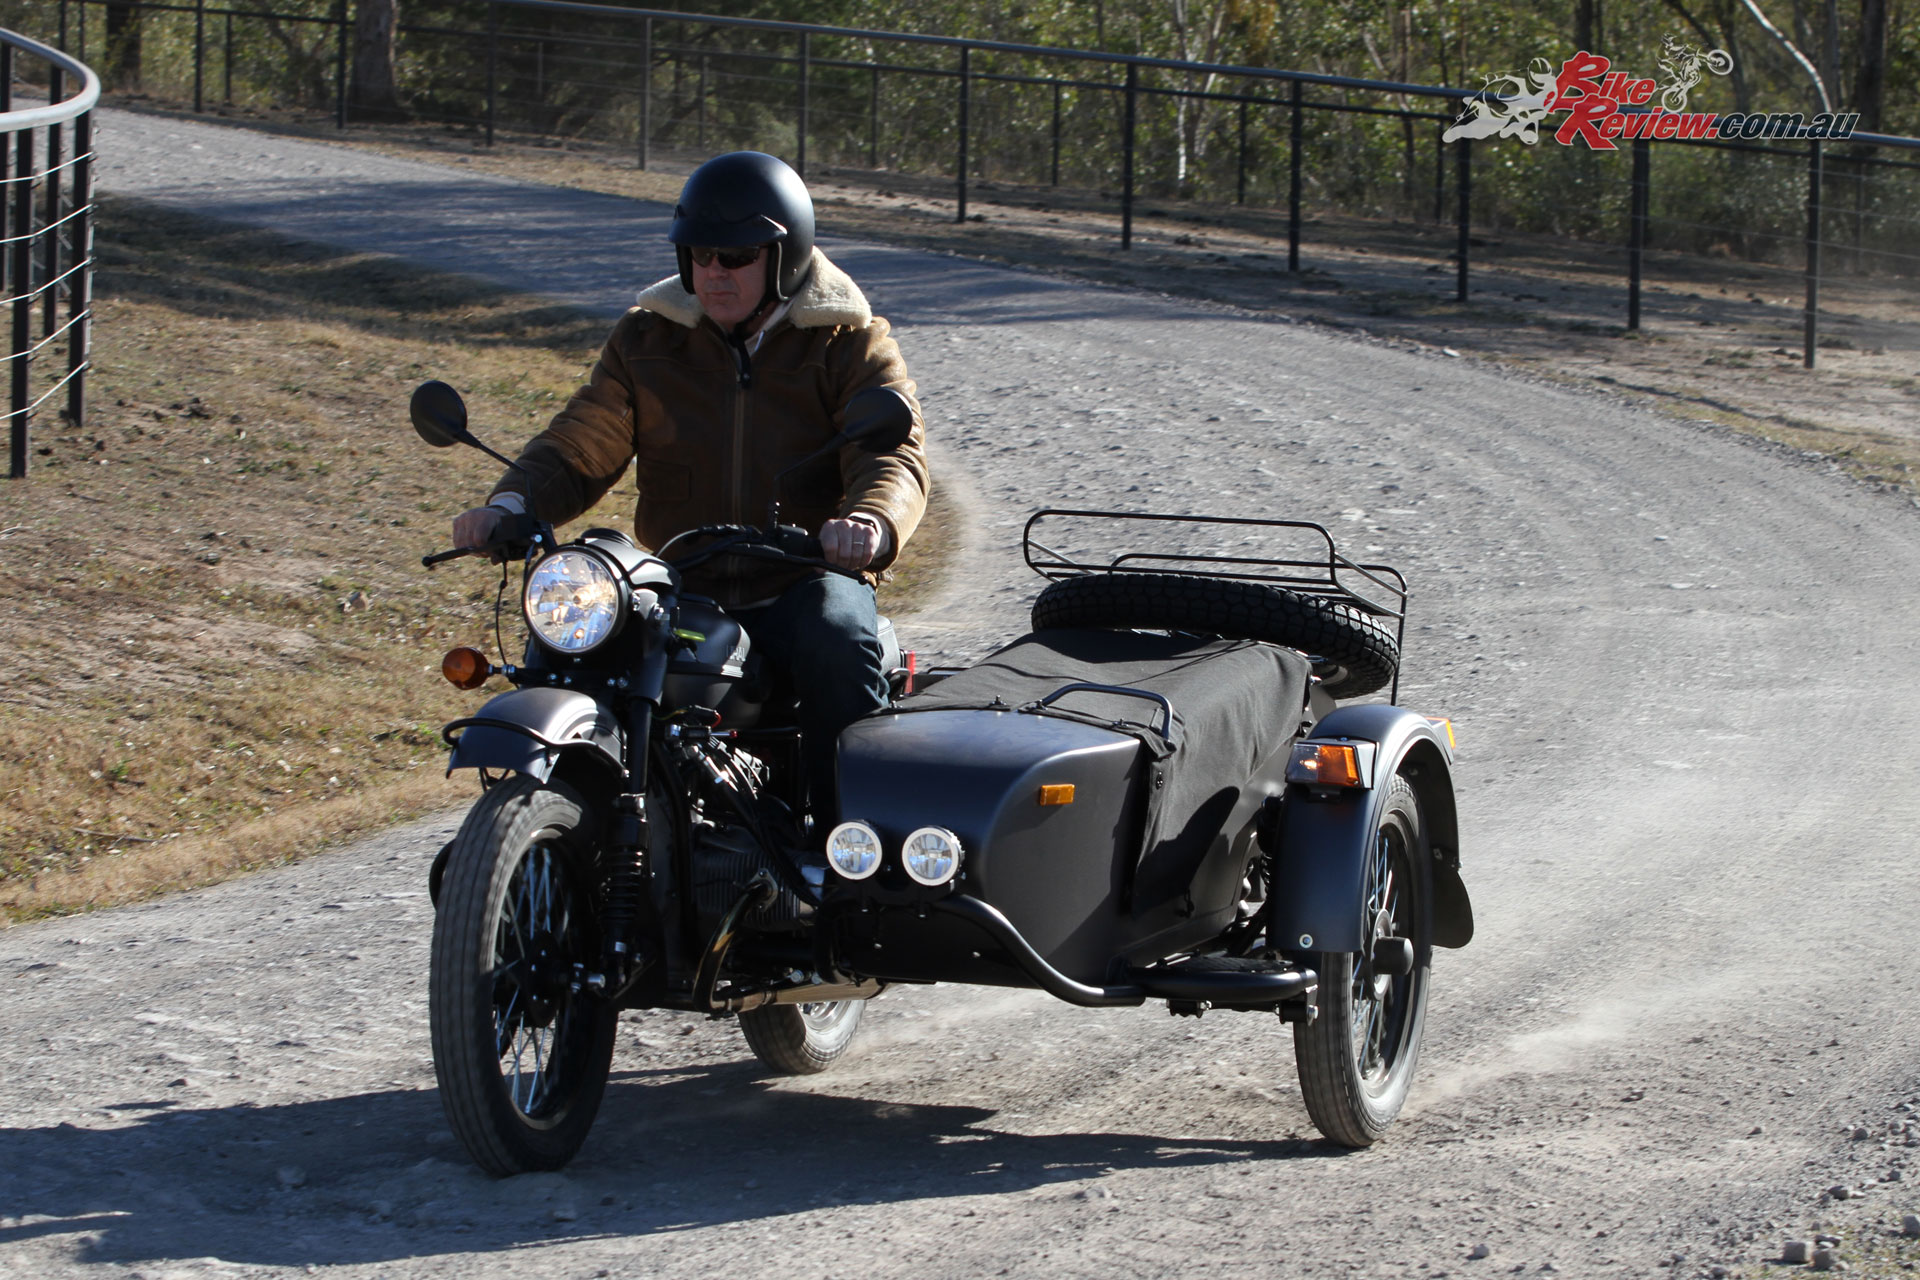 The Ural Ranger will handle Australia's outback roads and is competent across the rough stuff in the right hands